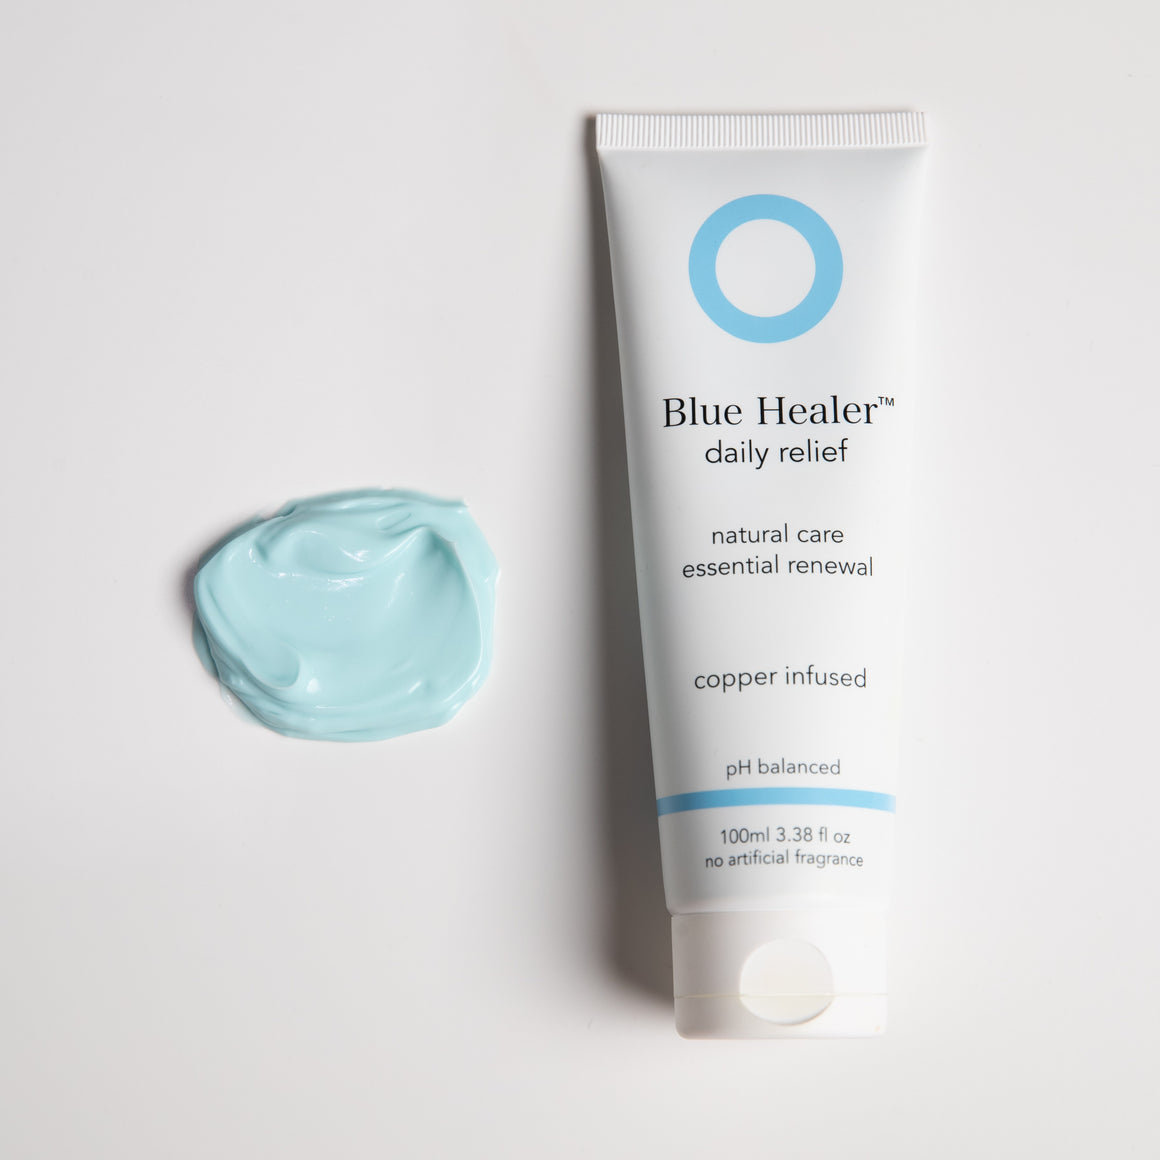 Blue Healer daily relief product tube next to a dollop of the naturally blue coloured cream.